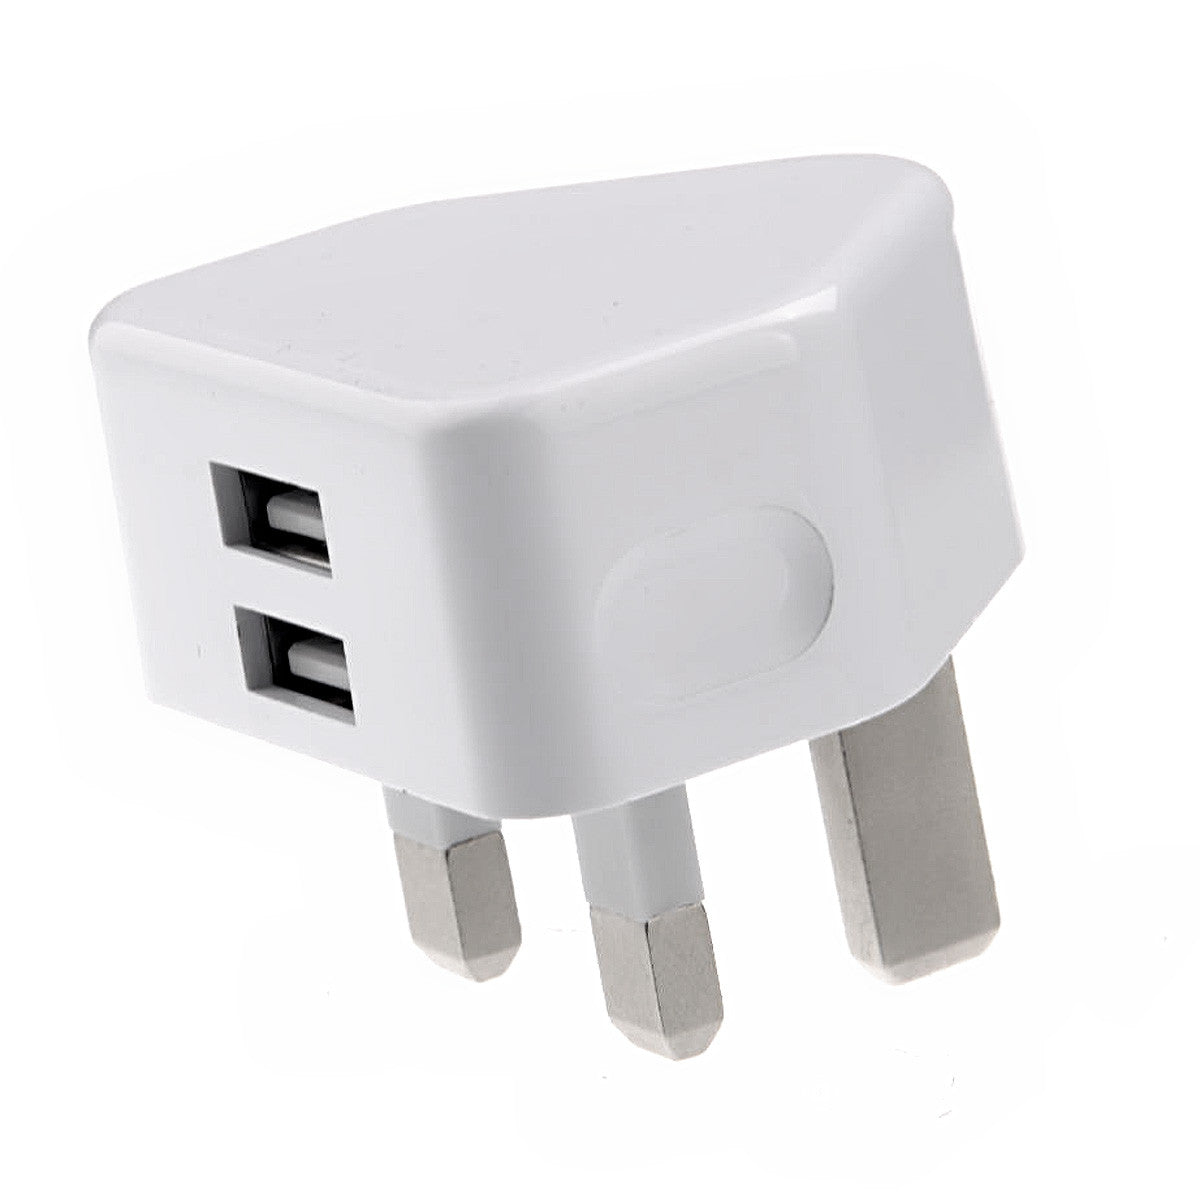 Portable 5V/2.1A Dual USB Output UK-plug AC Power Adapter Wall Charger (White)